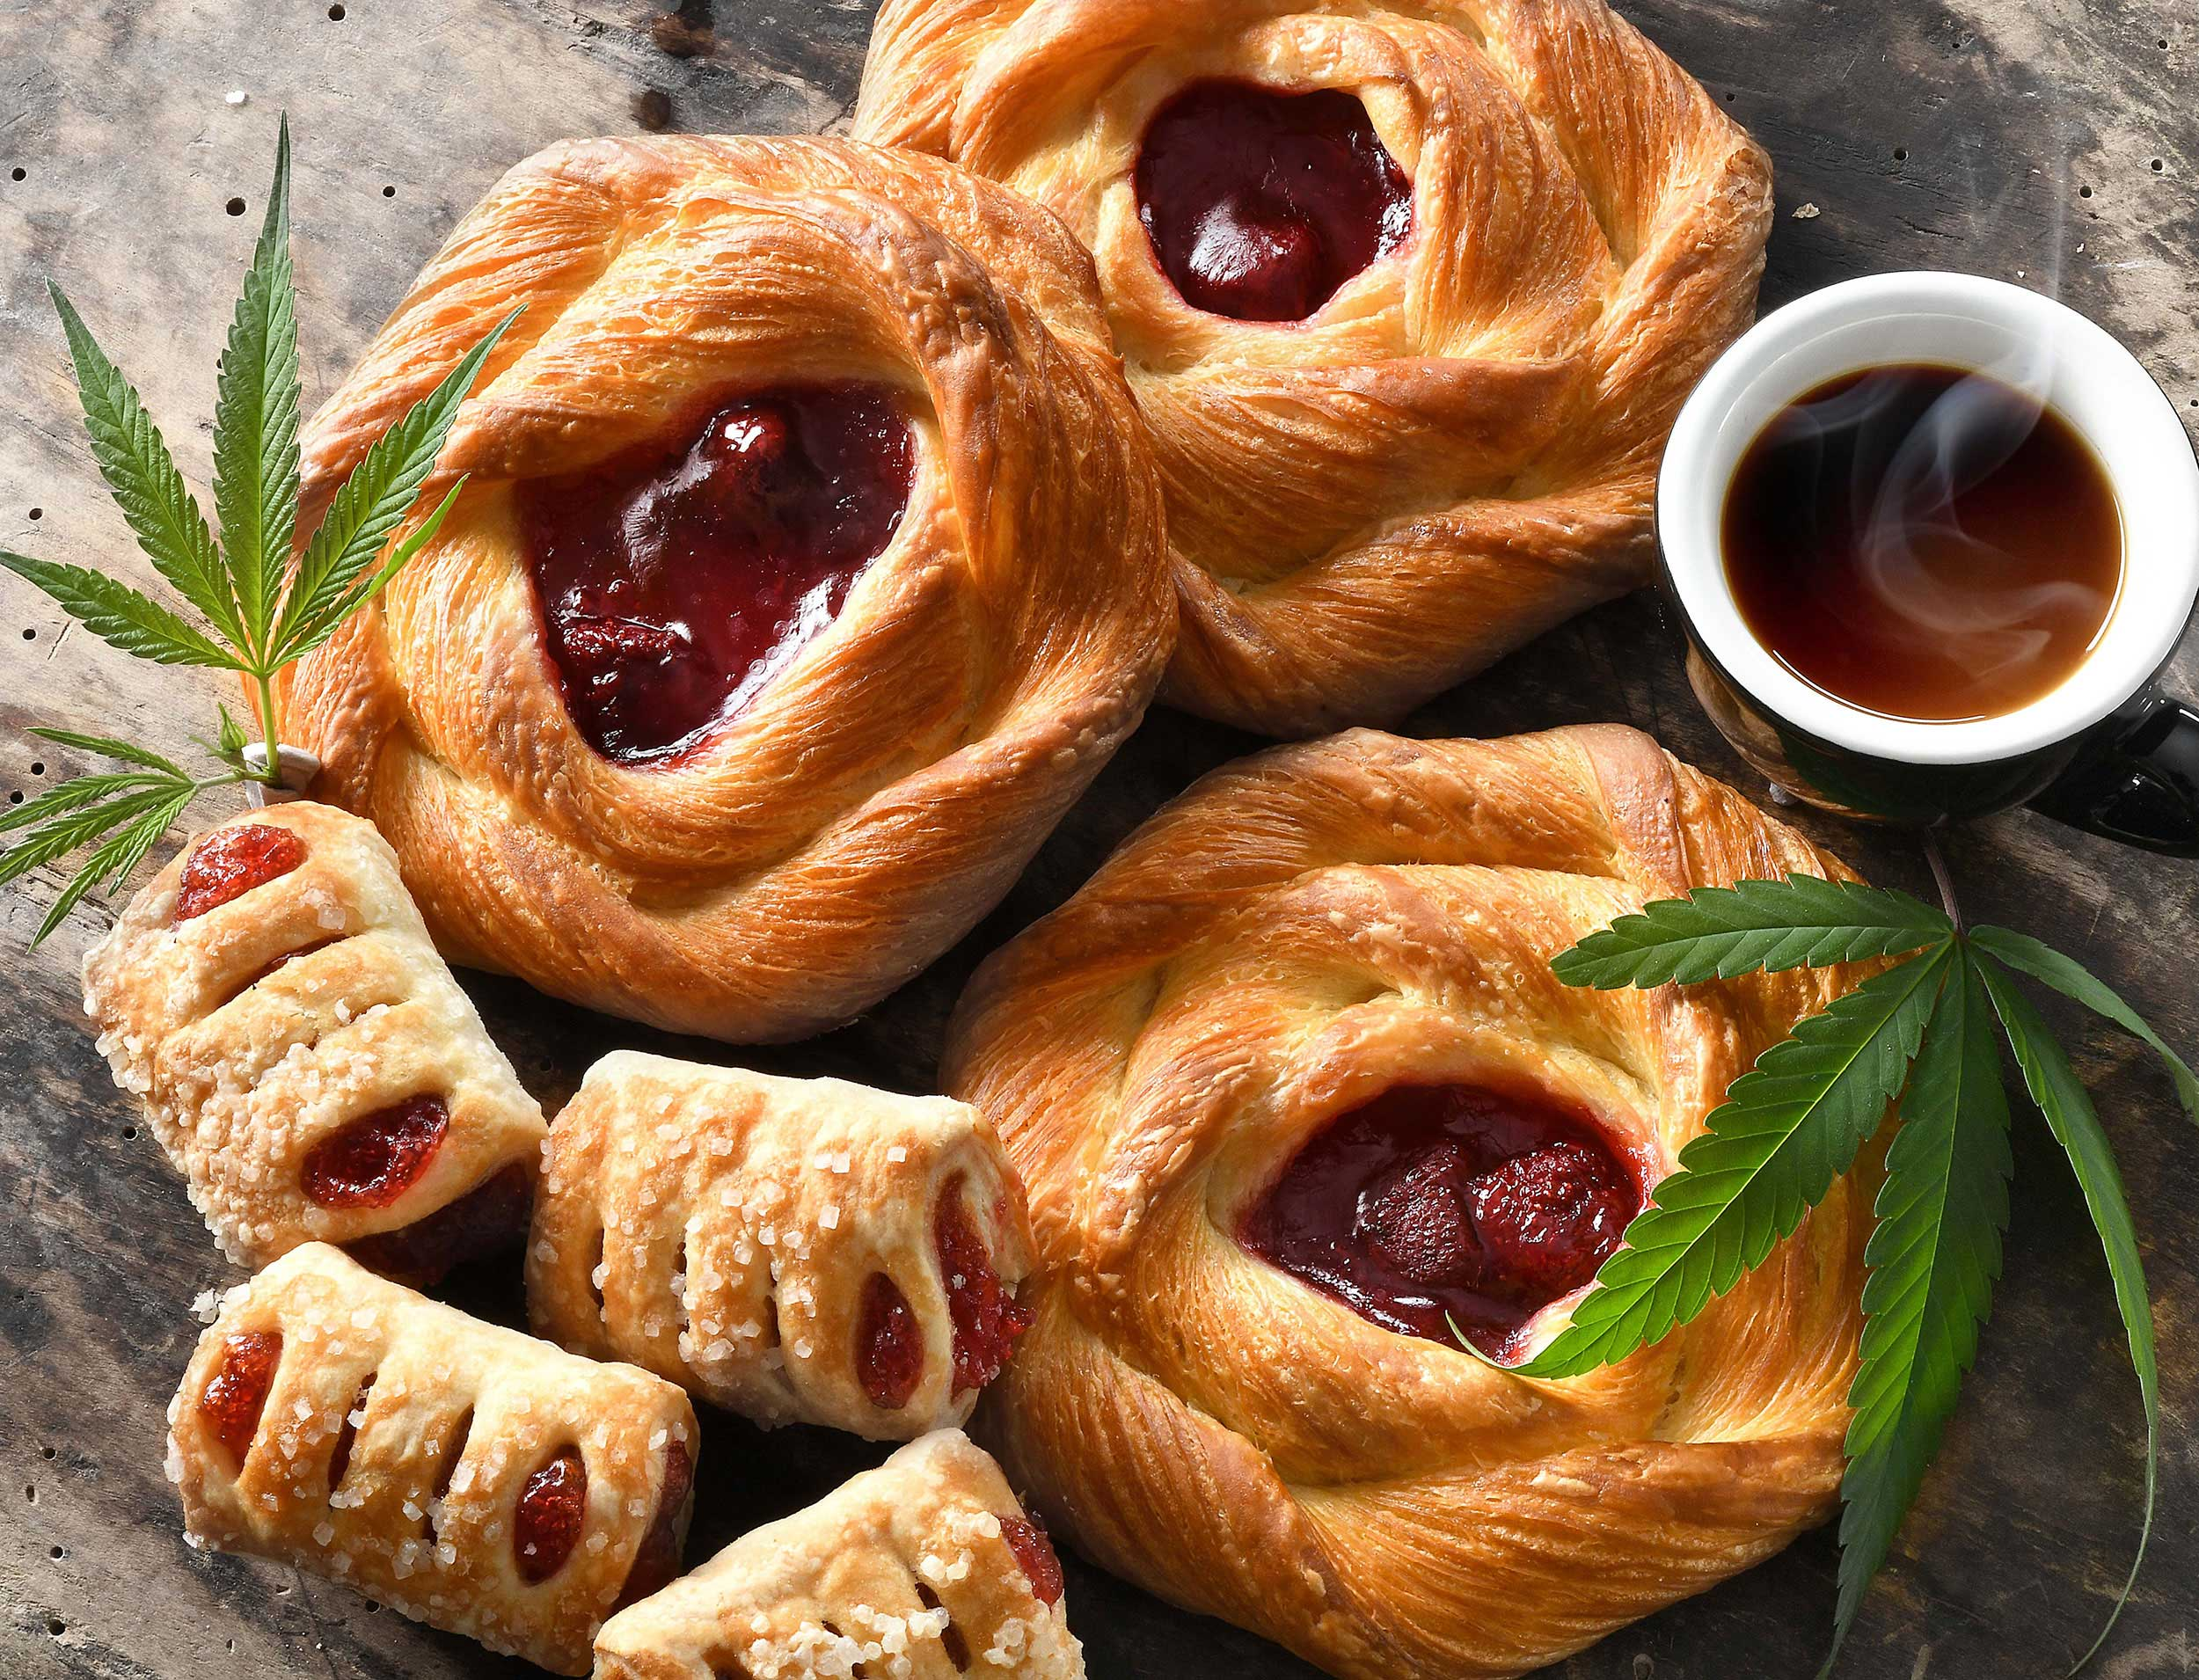 Pastries-with-Marijana-Leaf